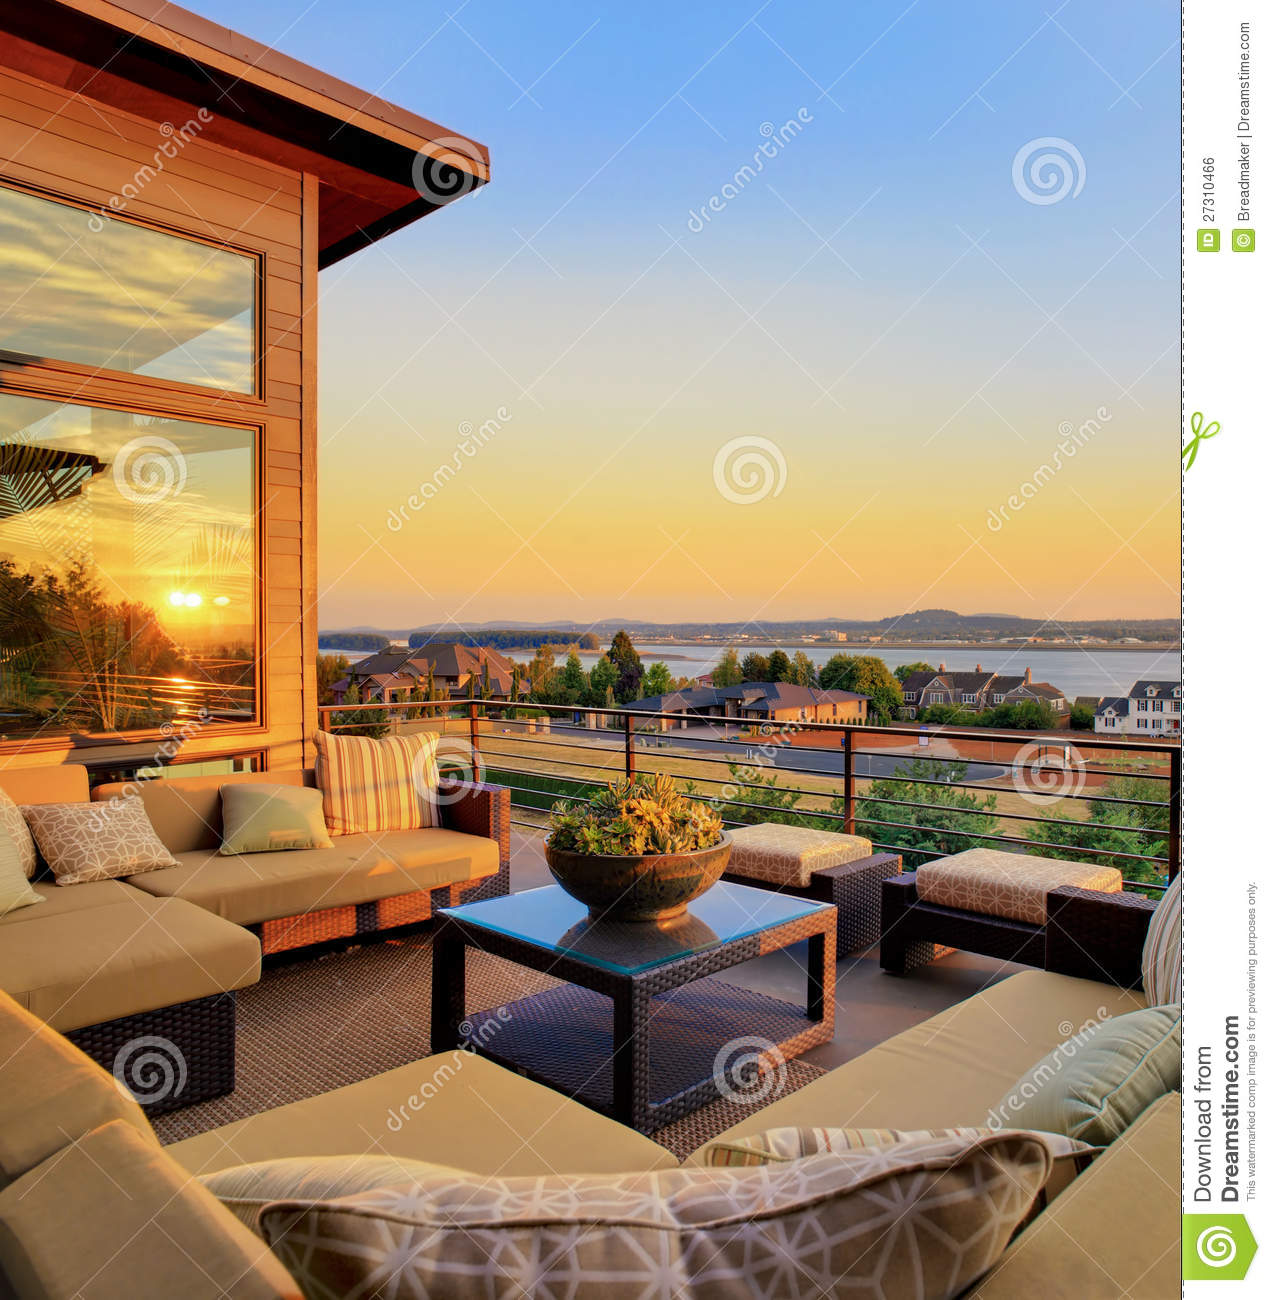 Sunset View Apartments: Home With Outdoor Patio And Sunset View Stock Photo